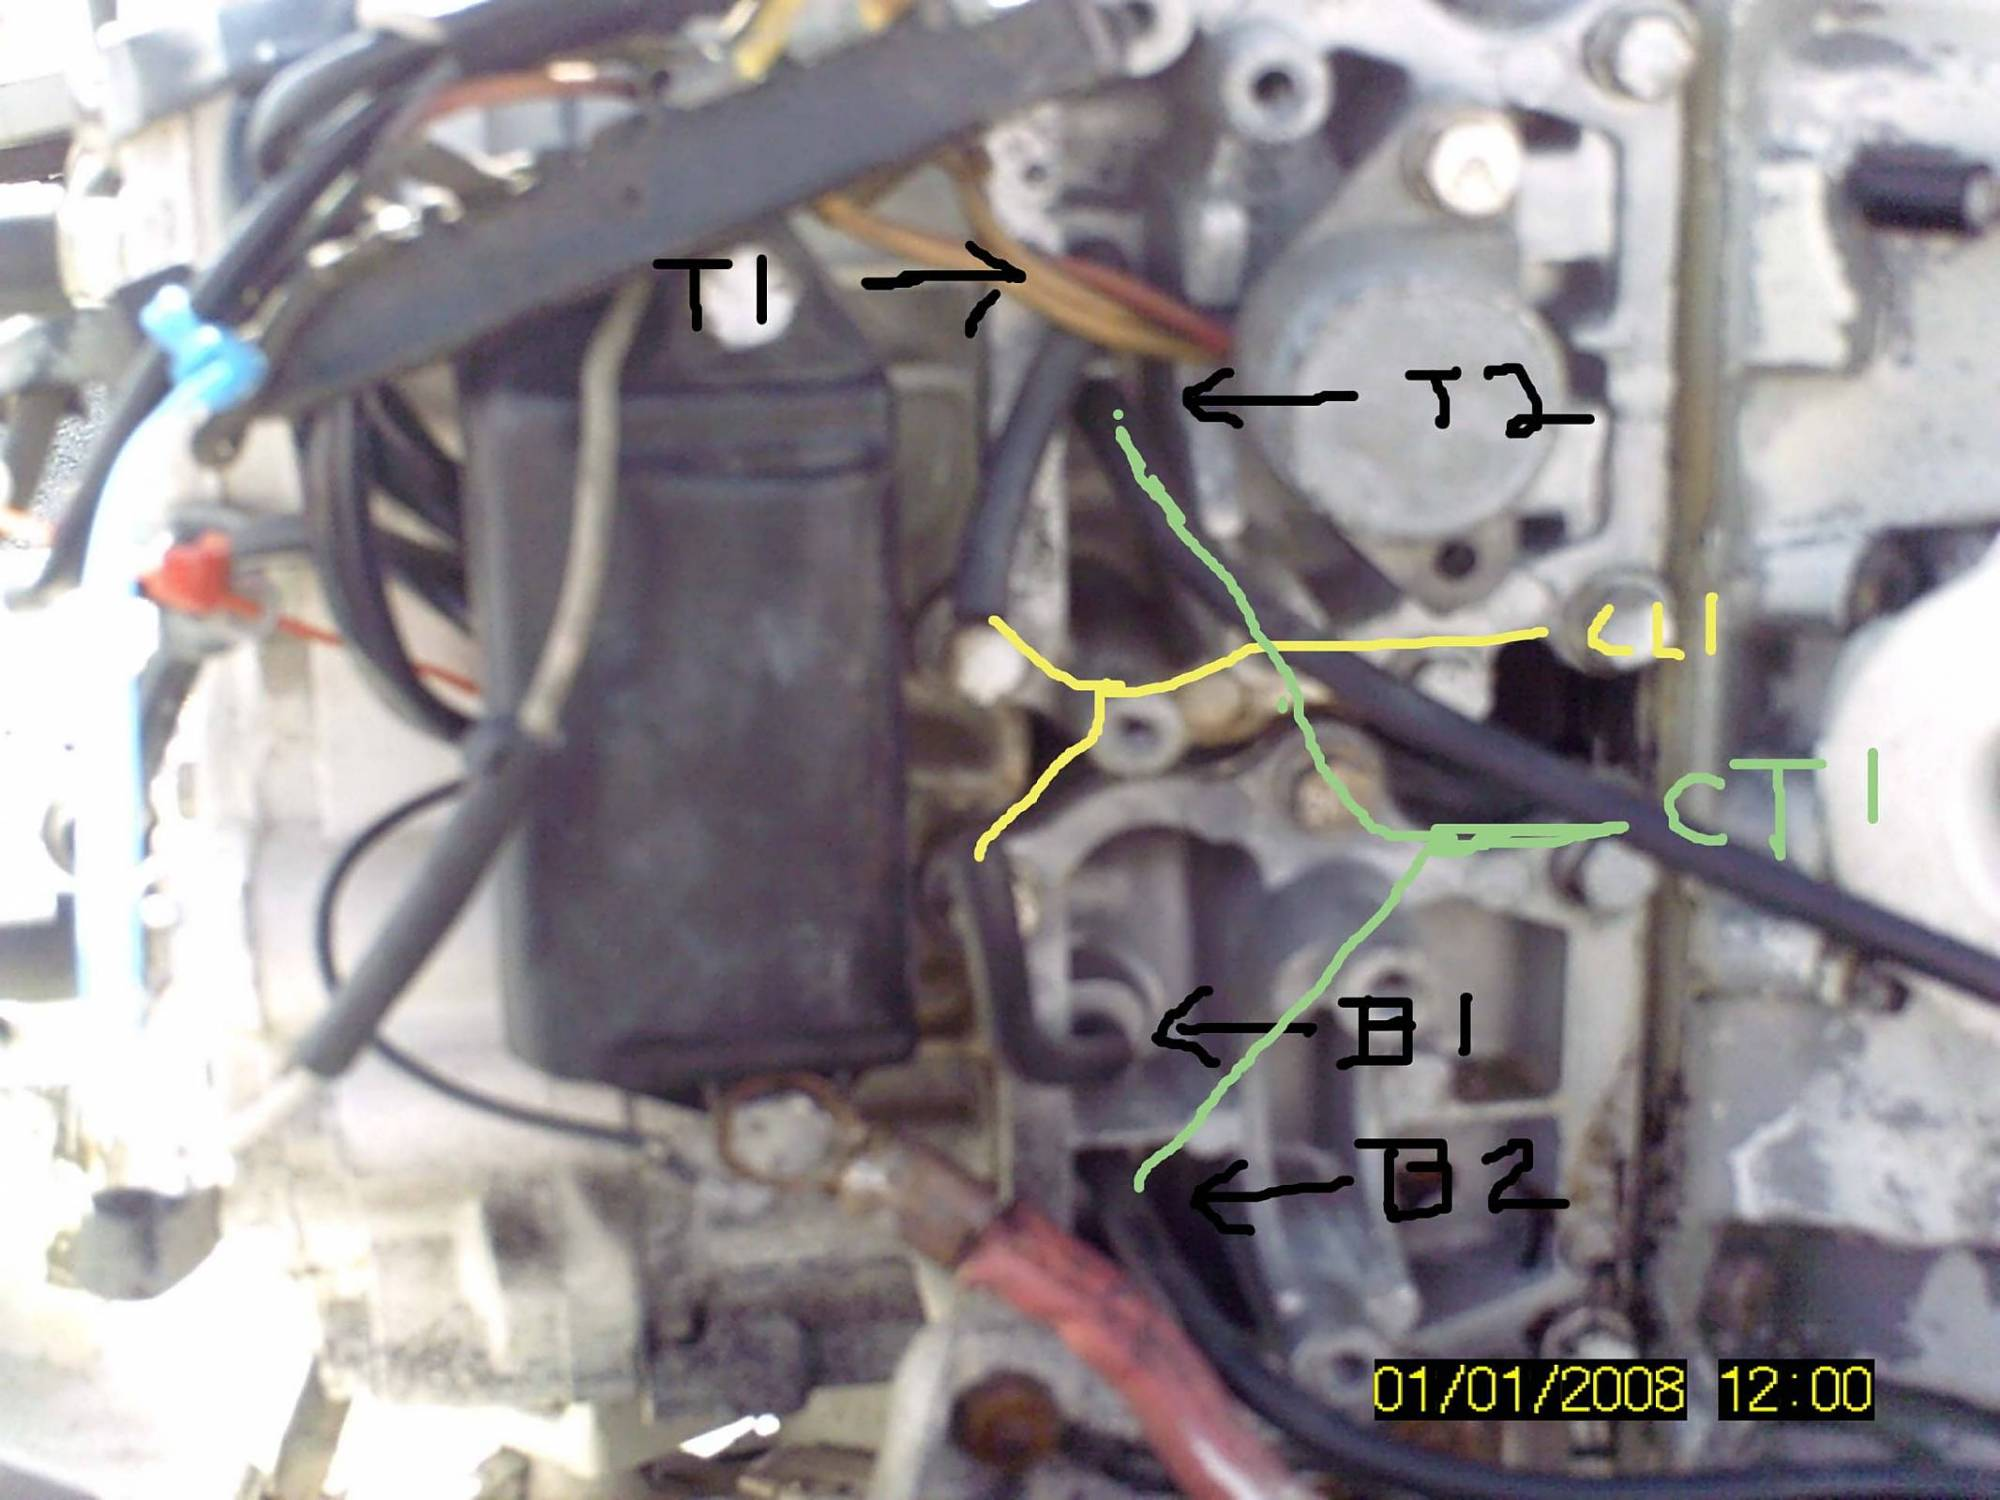 hight resolution of wrg 2891 115 hp evinrude wiring harness diagram1981 evinrude 115 hp recirculating hose diagram boat